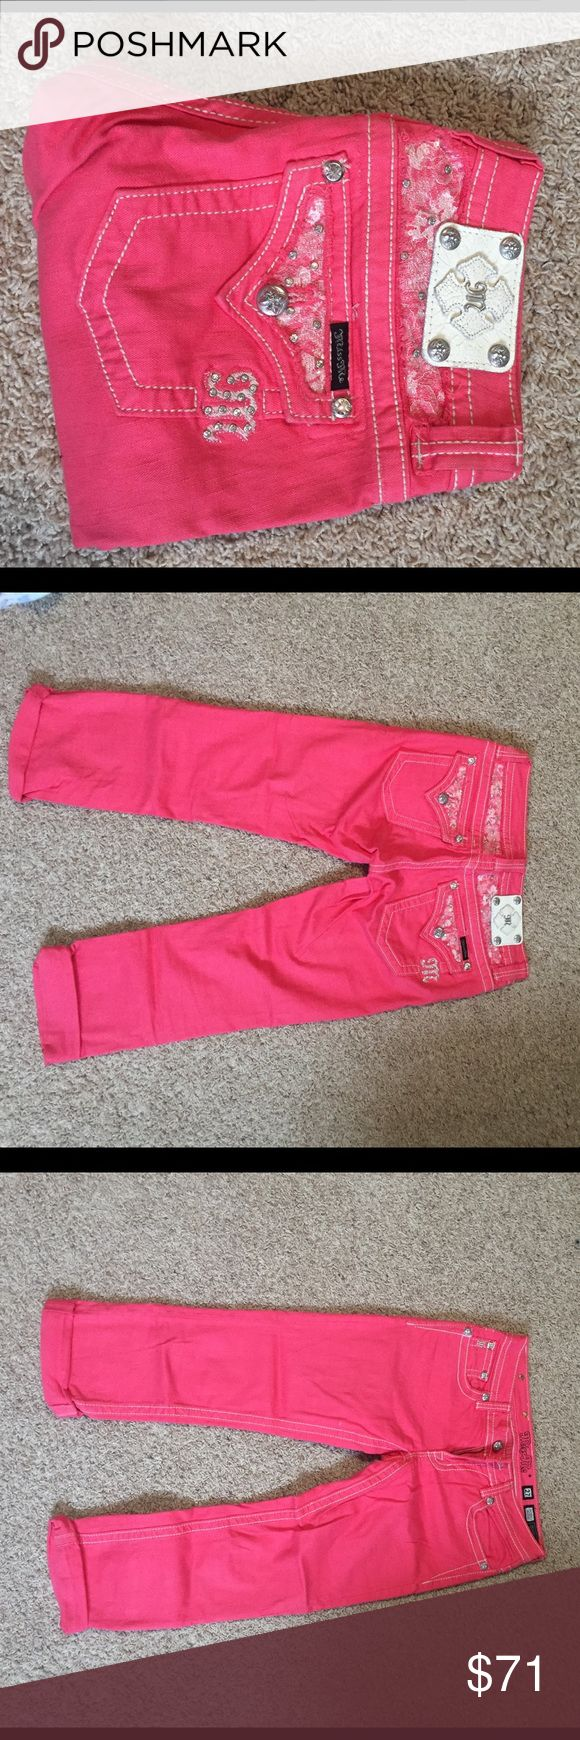 Salmon colored Miss me Capris In the picture these look very pink, but they are more of a salmon color. I am selling these because I never wear them. These are really really cute. The waist is a size 27 and they are capris. Really great for summer and spring! In very good condition! Miss Me Jeans Ankle & Cropped